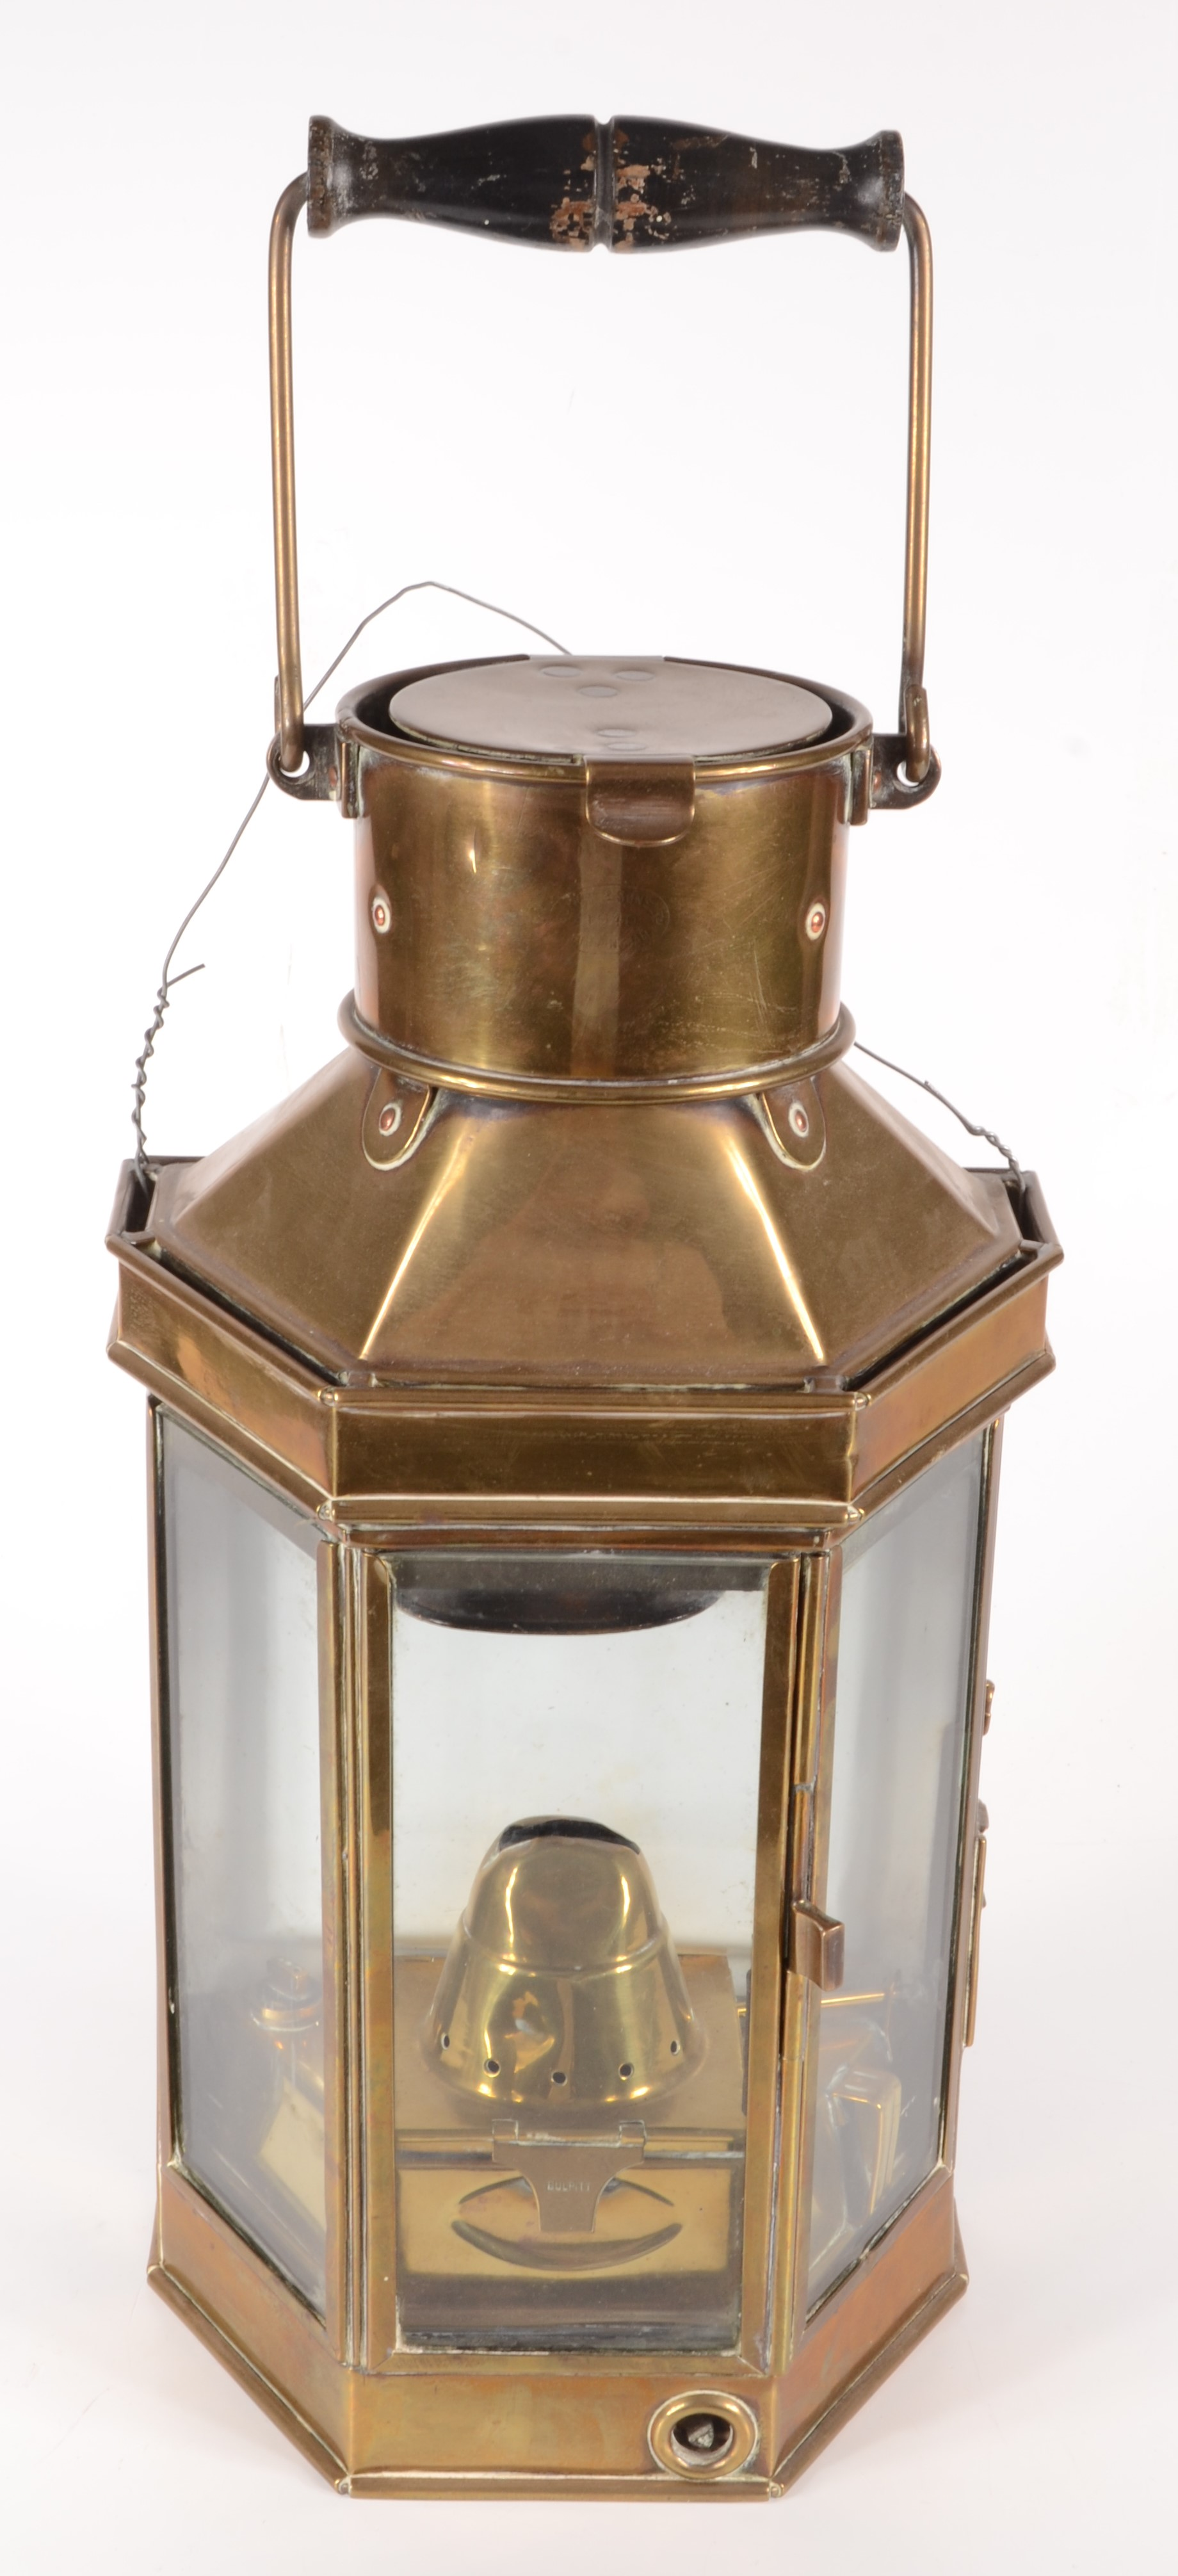 Lot 25 - A brass ships lamp, impressed Bulpitt, early 20th century, with a central glazed door, height 41cm,